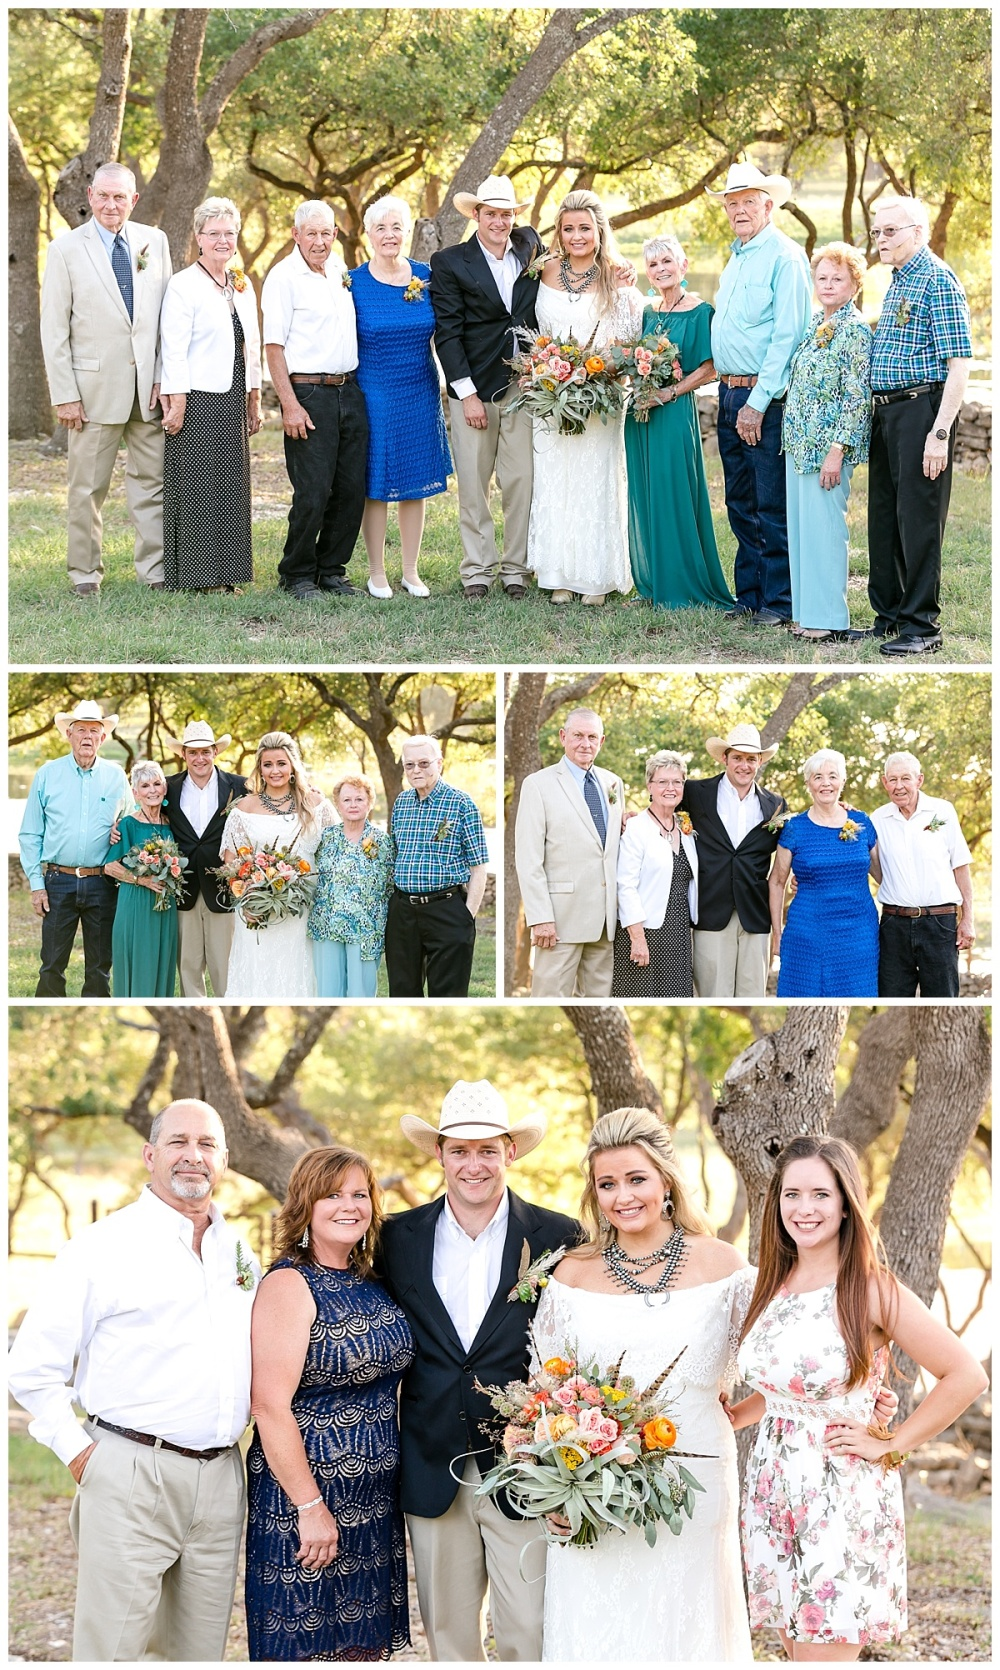 Texas-Wedding-Photographer-Braded-T-Ranch-Kendalia-Bride-Groom-Southwestern-Style-Carly-Barton-Photography-Vogt_0043.jpg